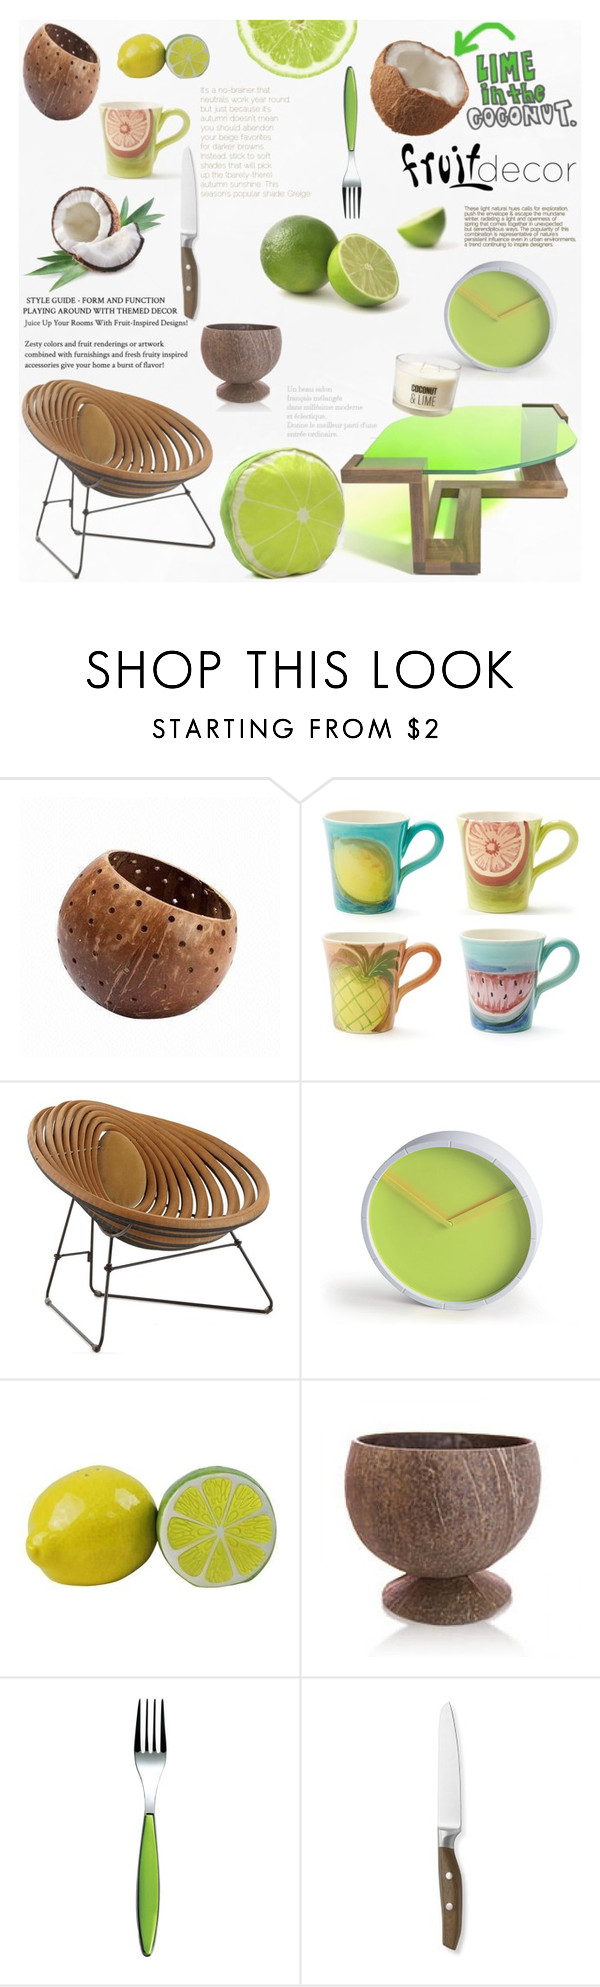 """""""Untitled #1310"""" by blackfury ❤ liked on Polyvore featuring interior, interiors, interior design, home, home decor, interior decorating, Squarefeathers, LEXON, Guzzini and Wüsthof"""